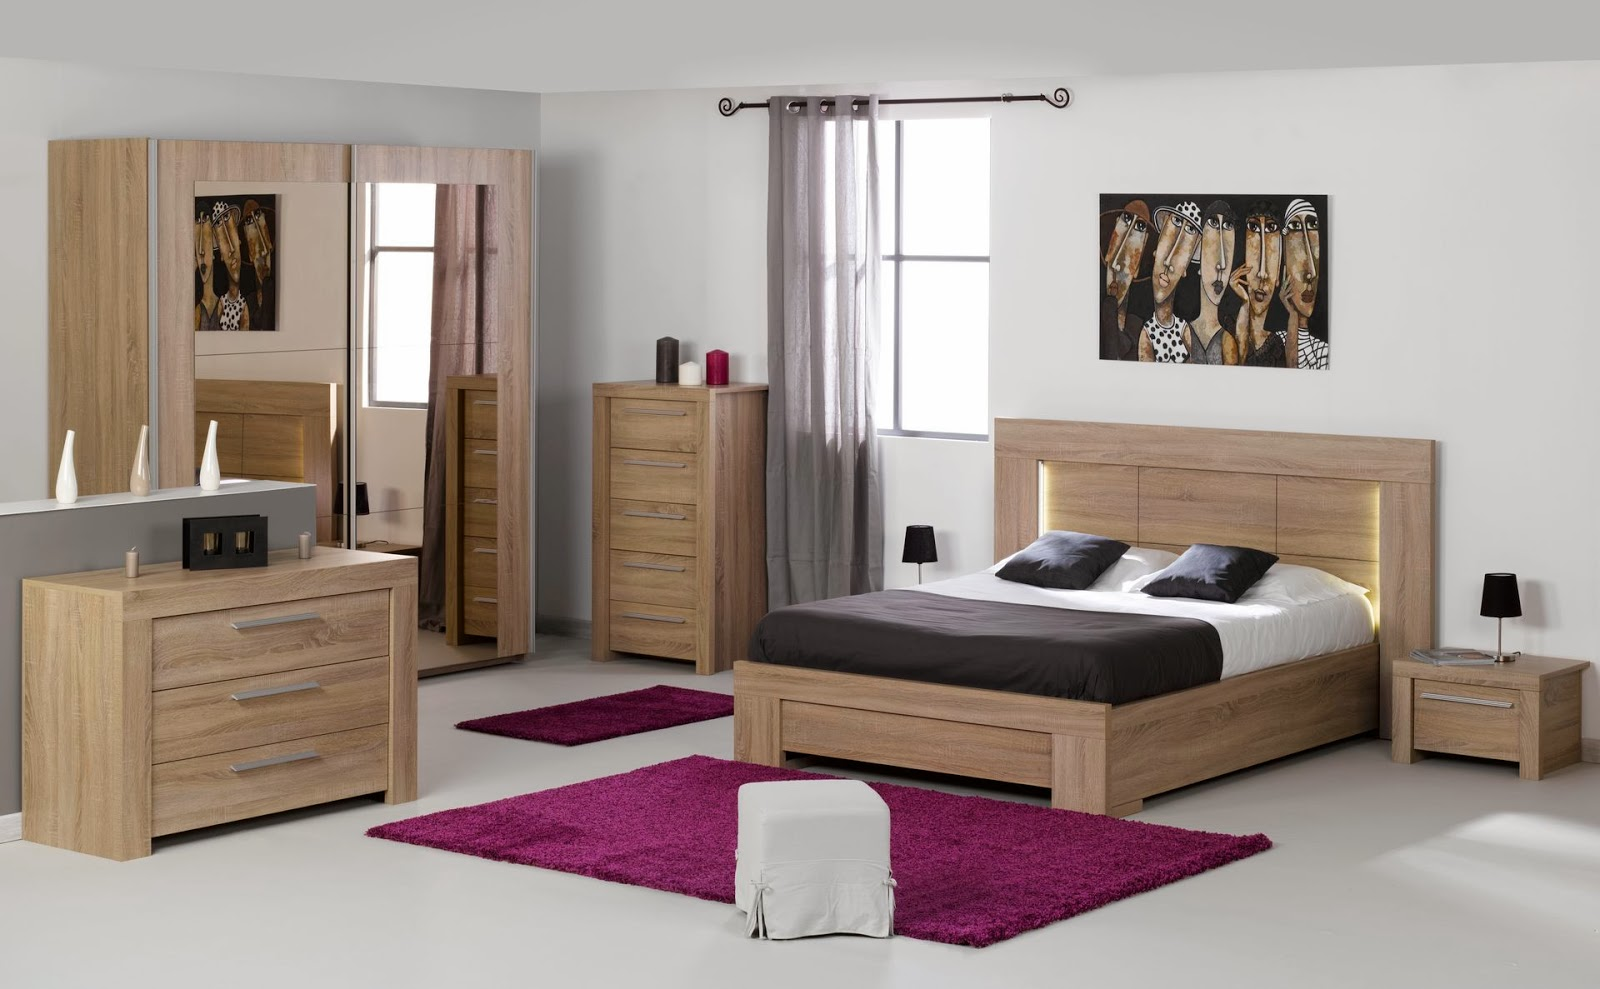 chambre a coucher en bois moderne. Black Bedroom Furniture Sets. Home Design Ideas